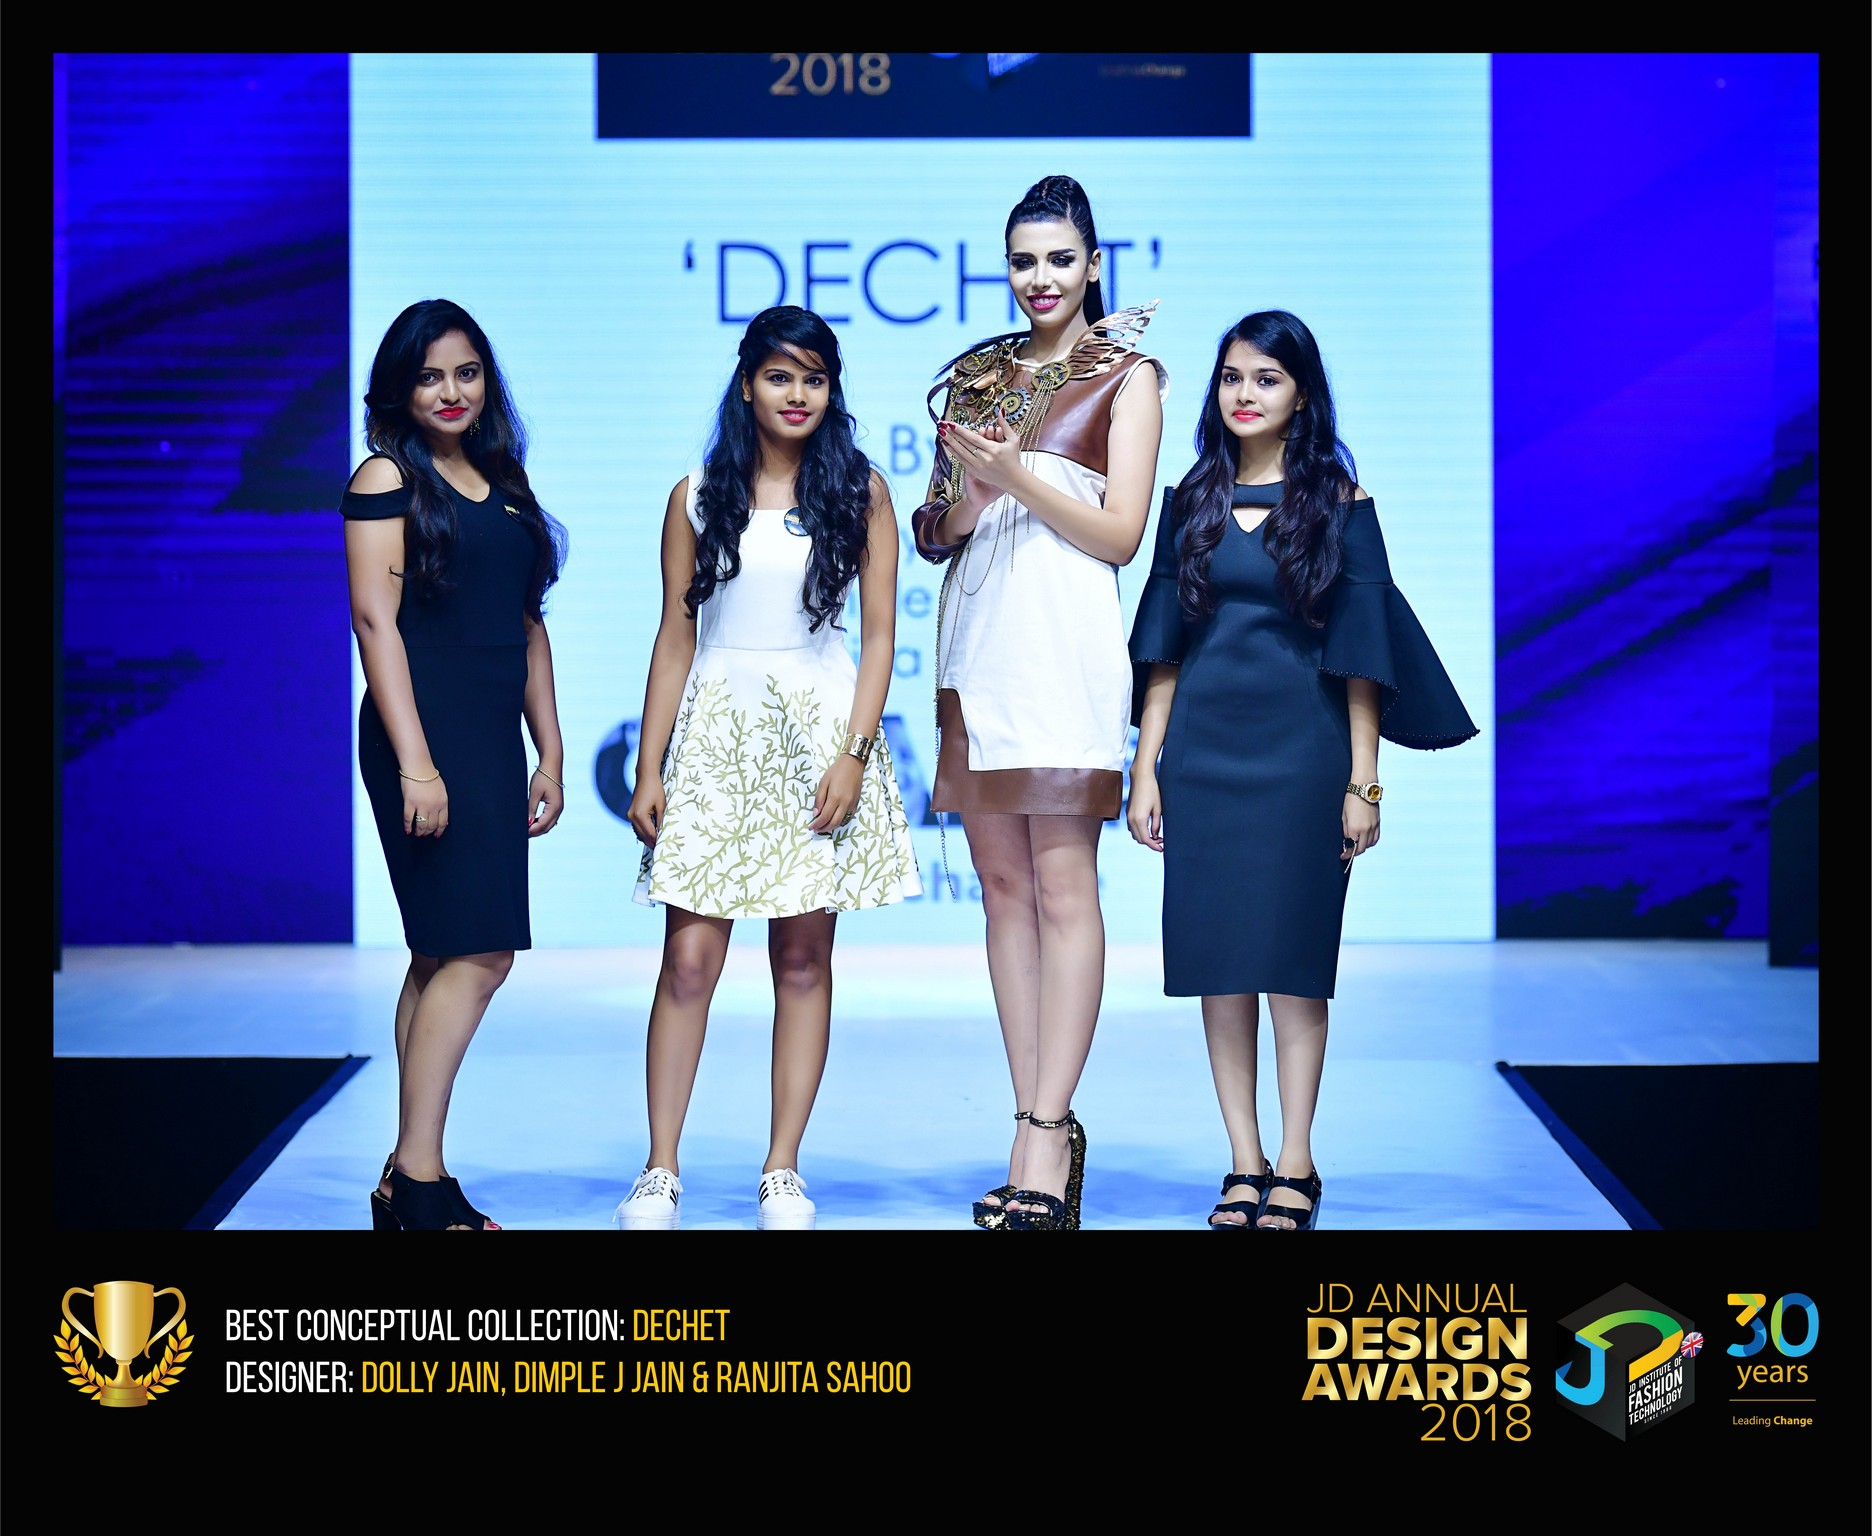 Dechet – Change – JD Annual Design Awards 2018 | Designer: Dimple, Dolly and Ranjita DFD July A 2017 | Photography : Jerin Nath (@jerin_nath) dechet - DECHET3 - Dechet – Change – JD Annual Design Award 2018